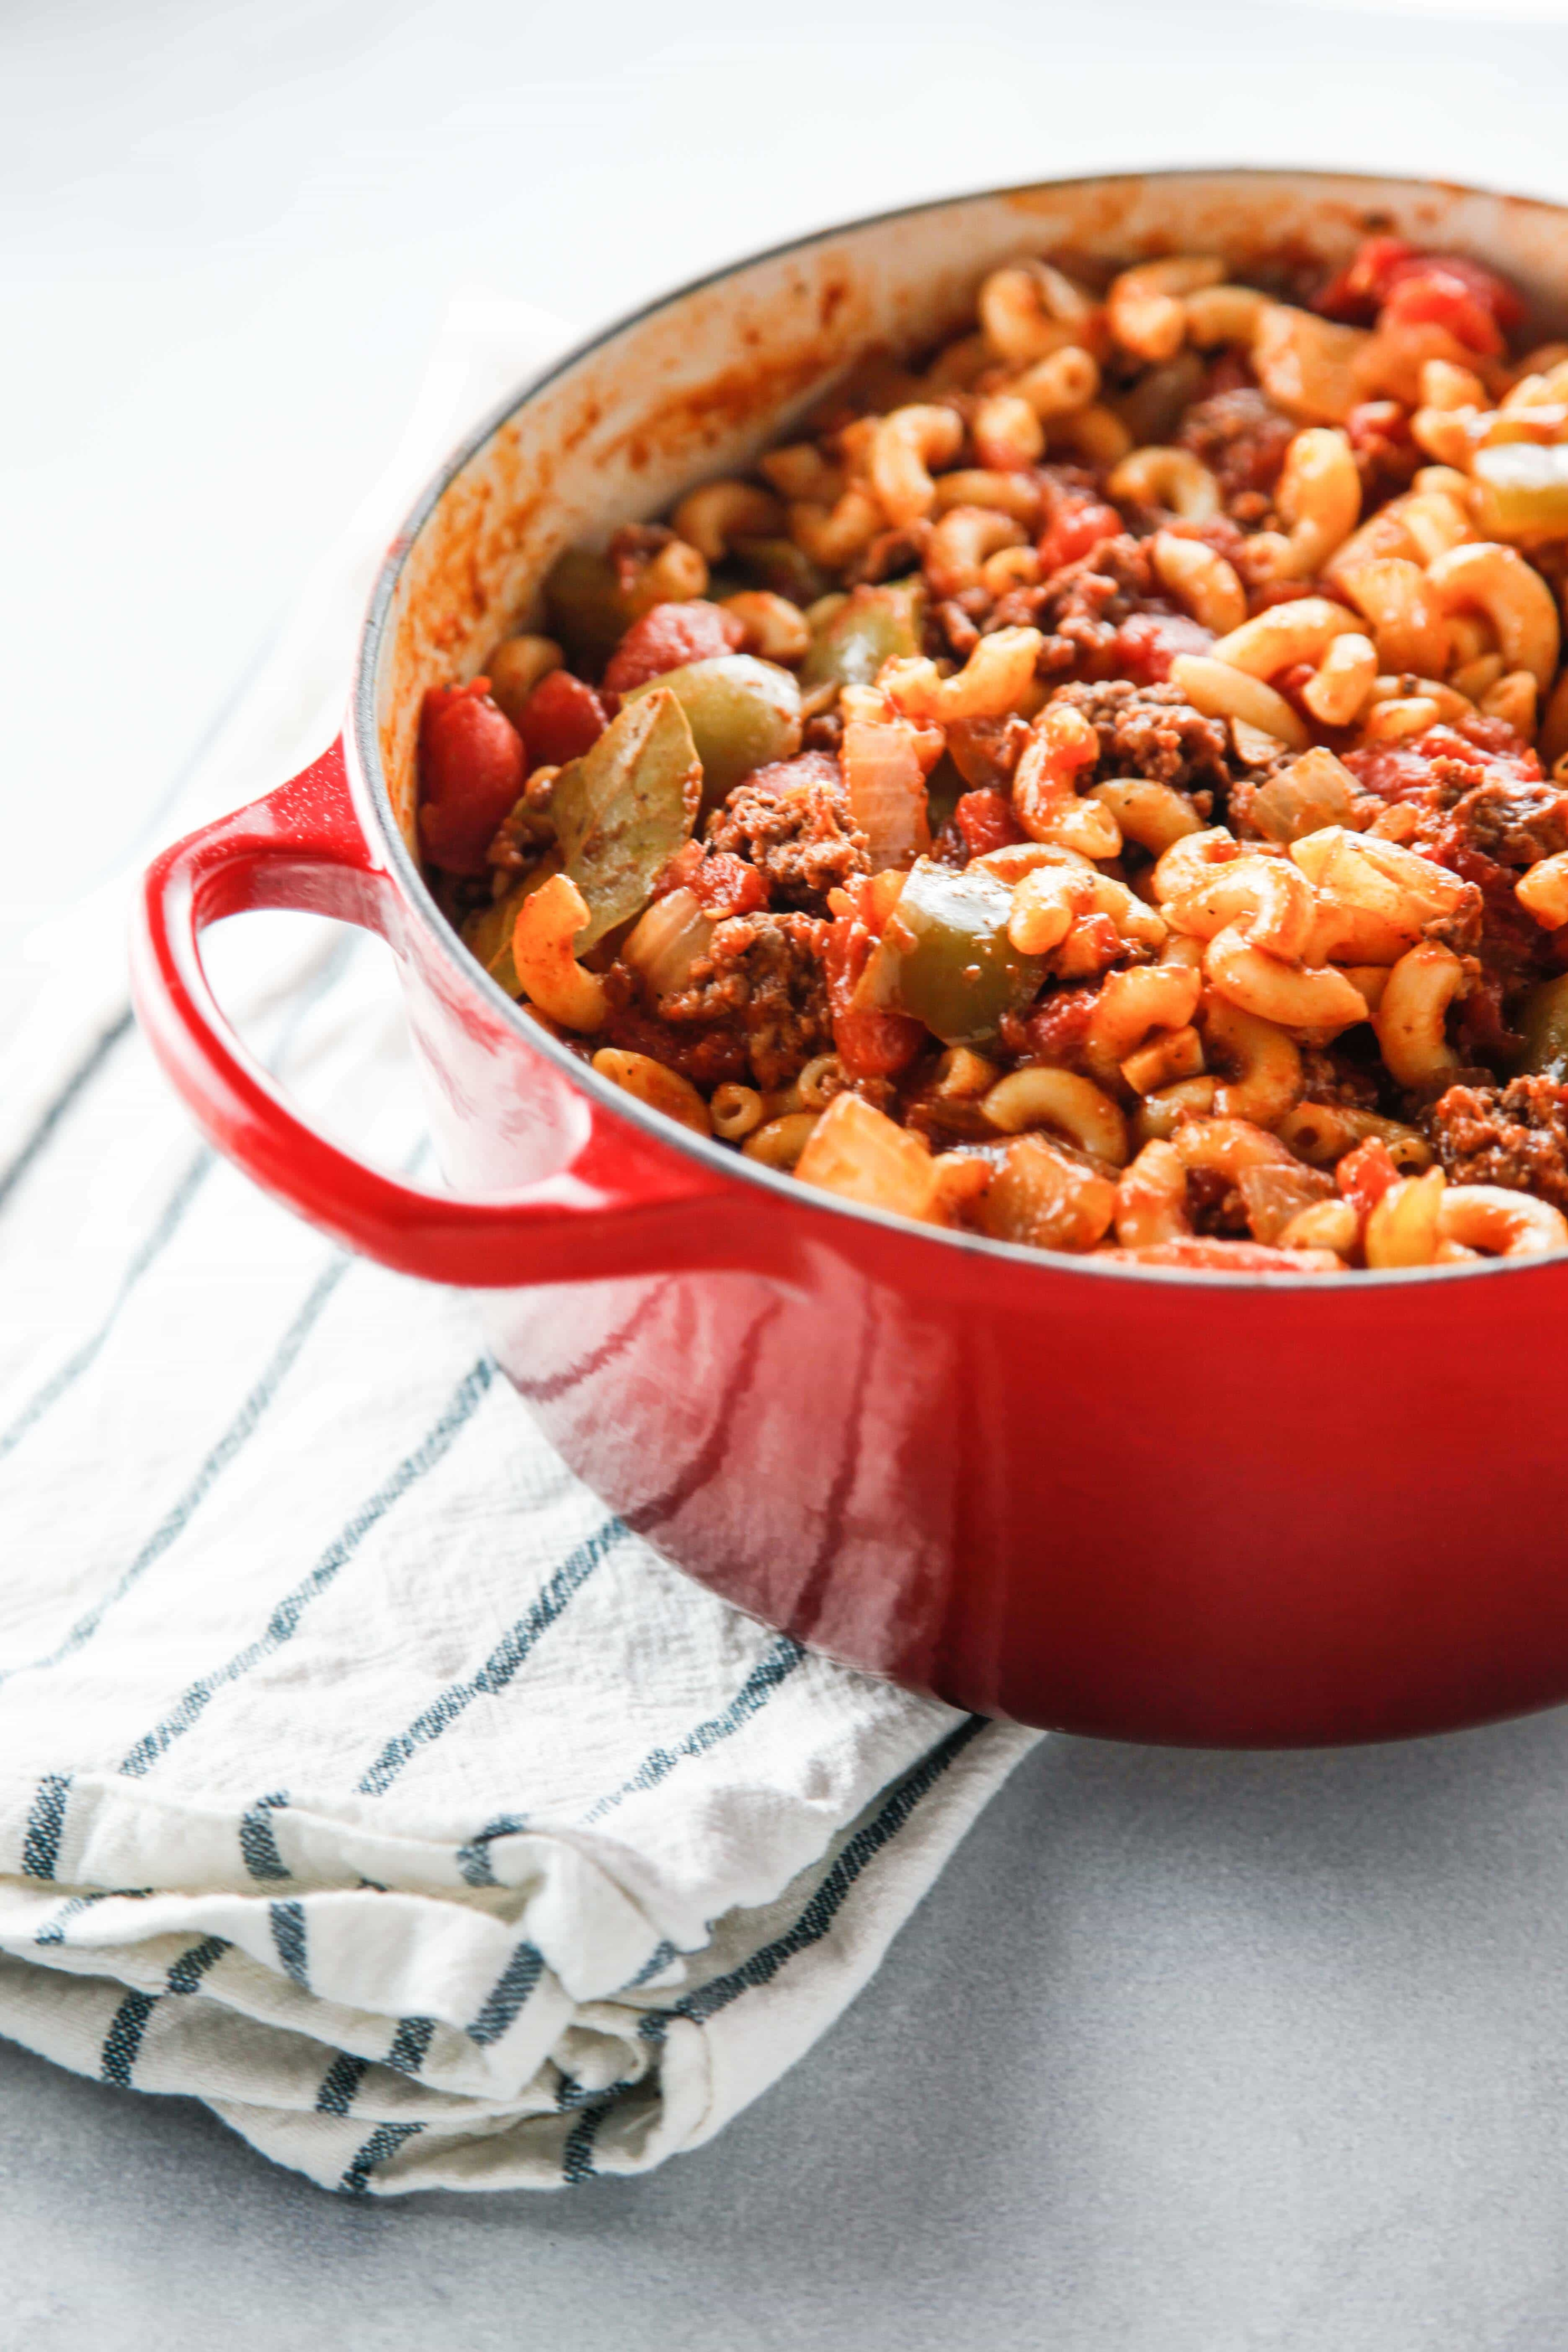 a red dutch oven full of Easy Saucy American Goulash.